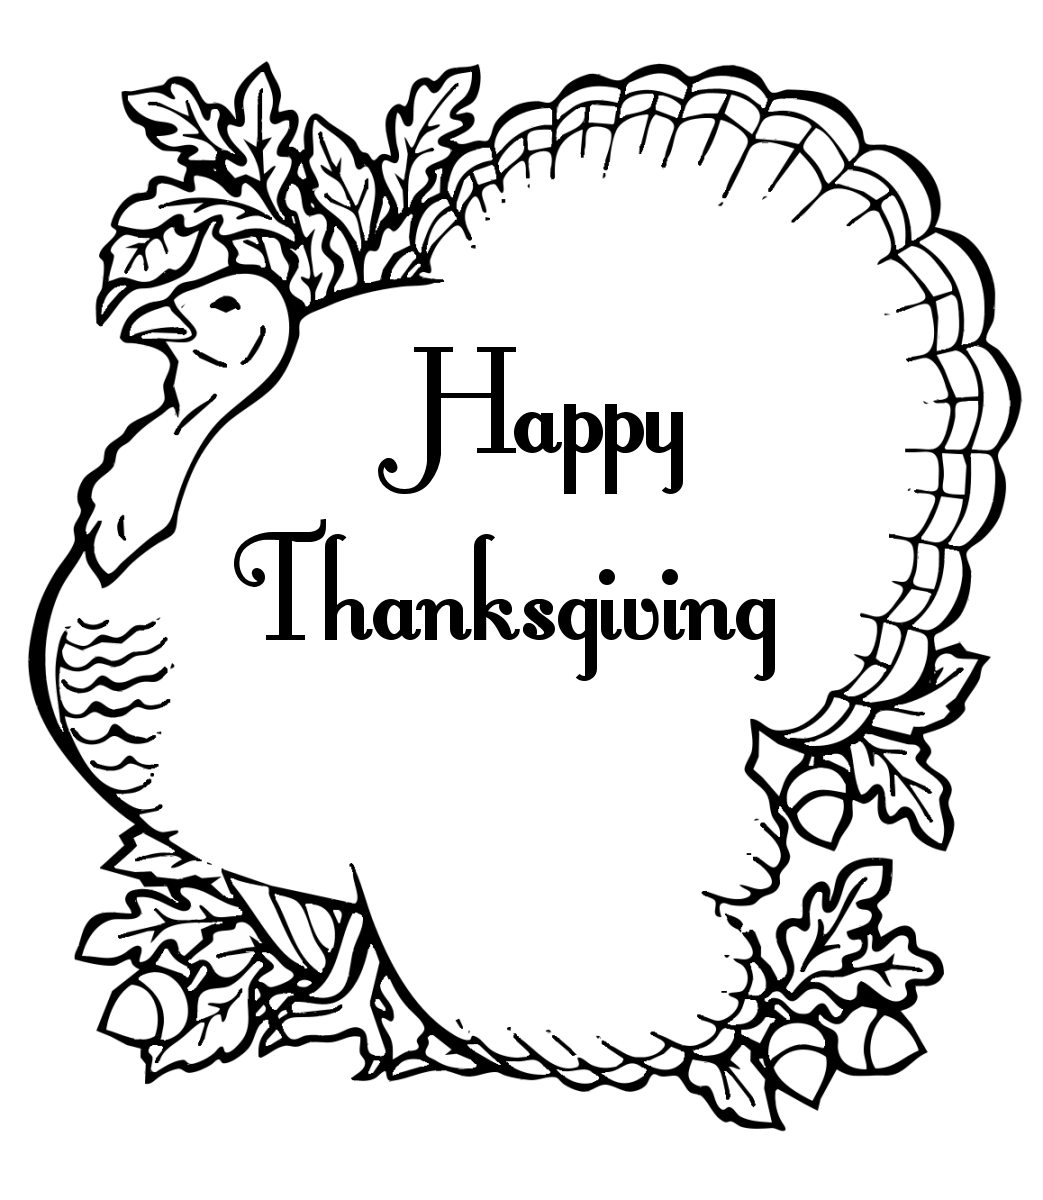 Free black and white clipart for happy thanksgiving black and white Turkey black and white turkey black and white thanksgiving turkey ... black and white